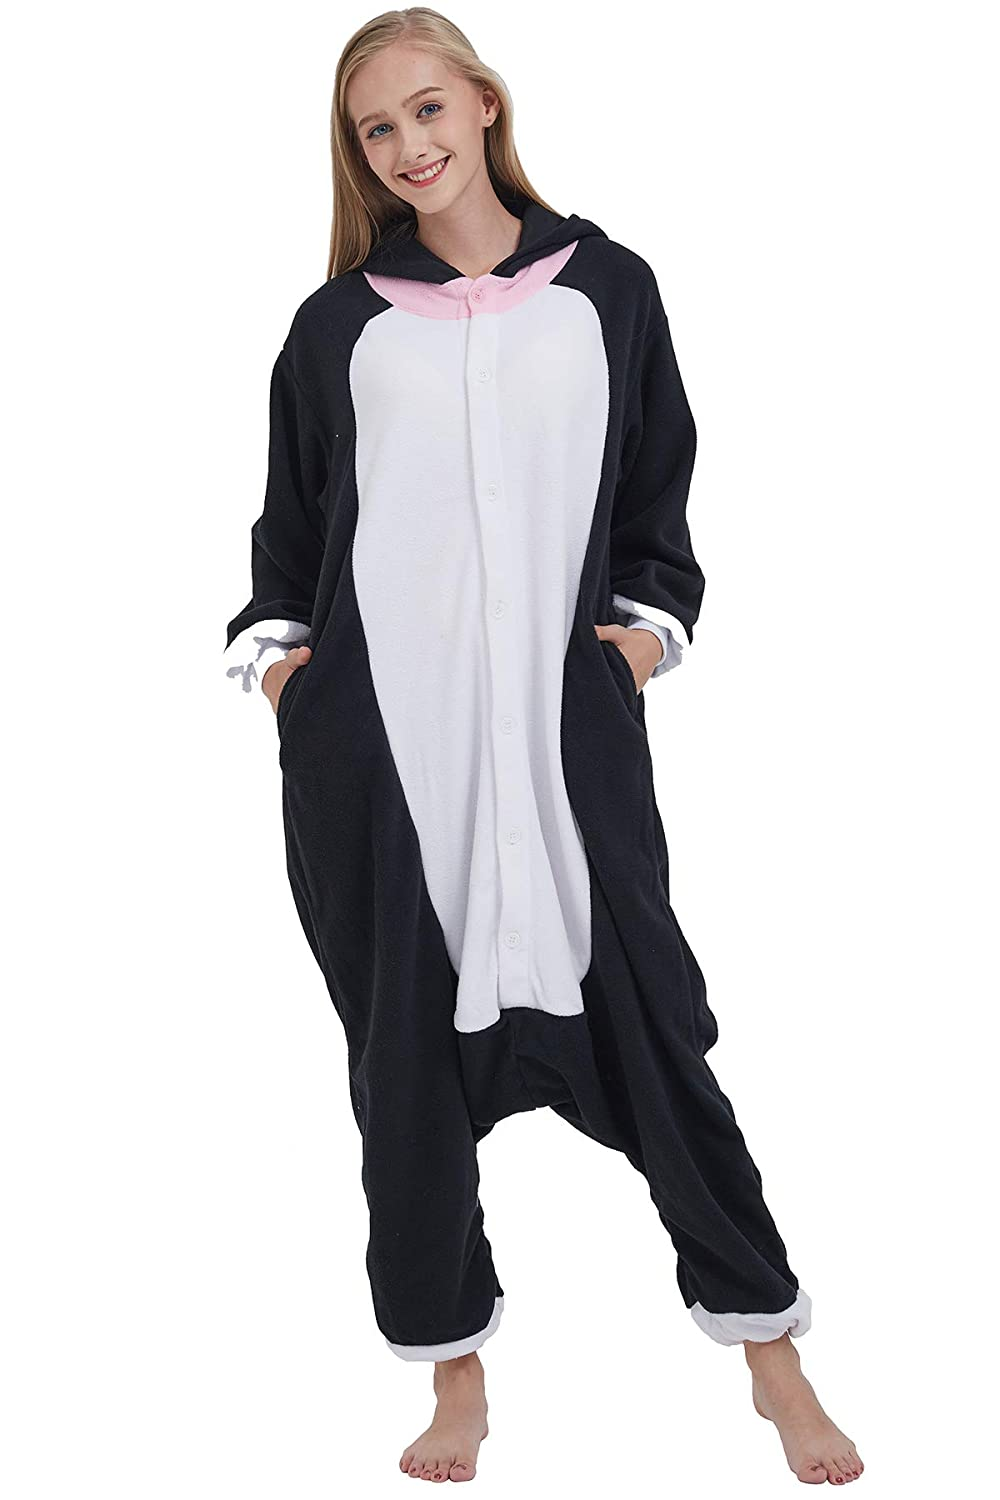 Pigiama Animati Kigurumi Gatto Procione Cosplay Red Panda Animale Adulti da Unisex Uomo Donna